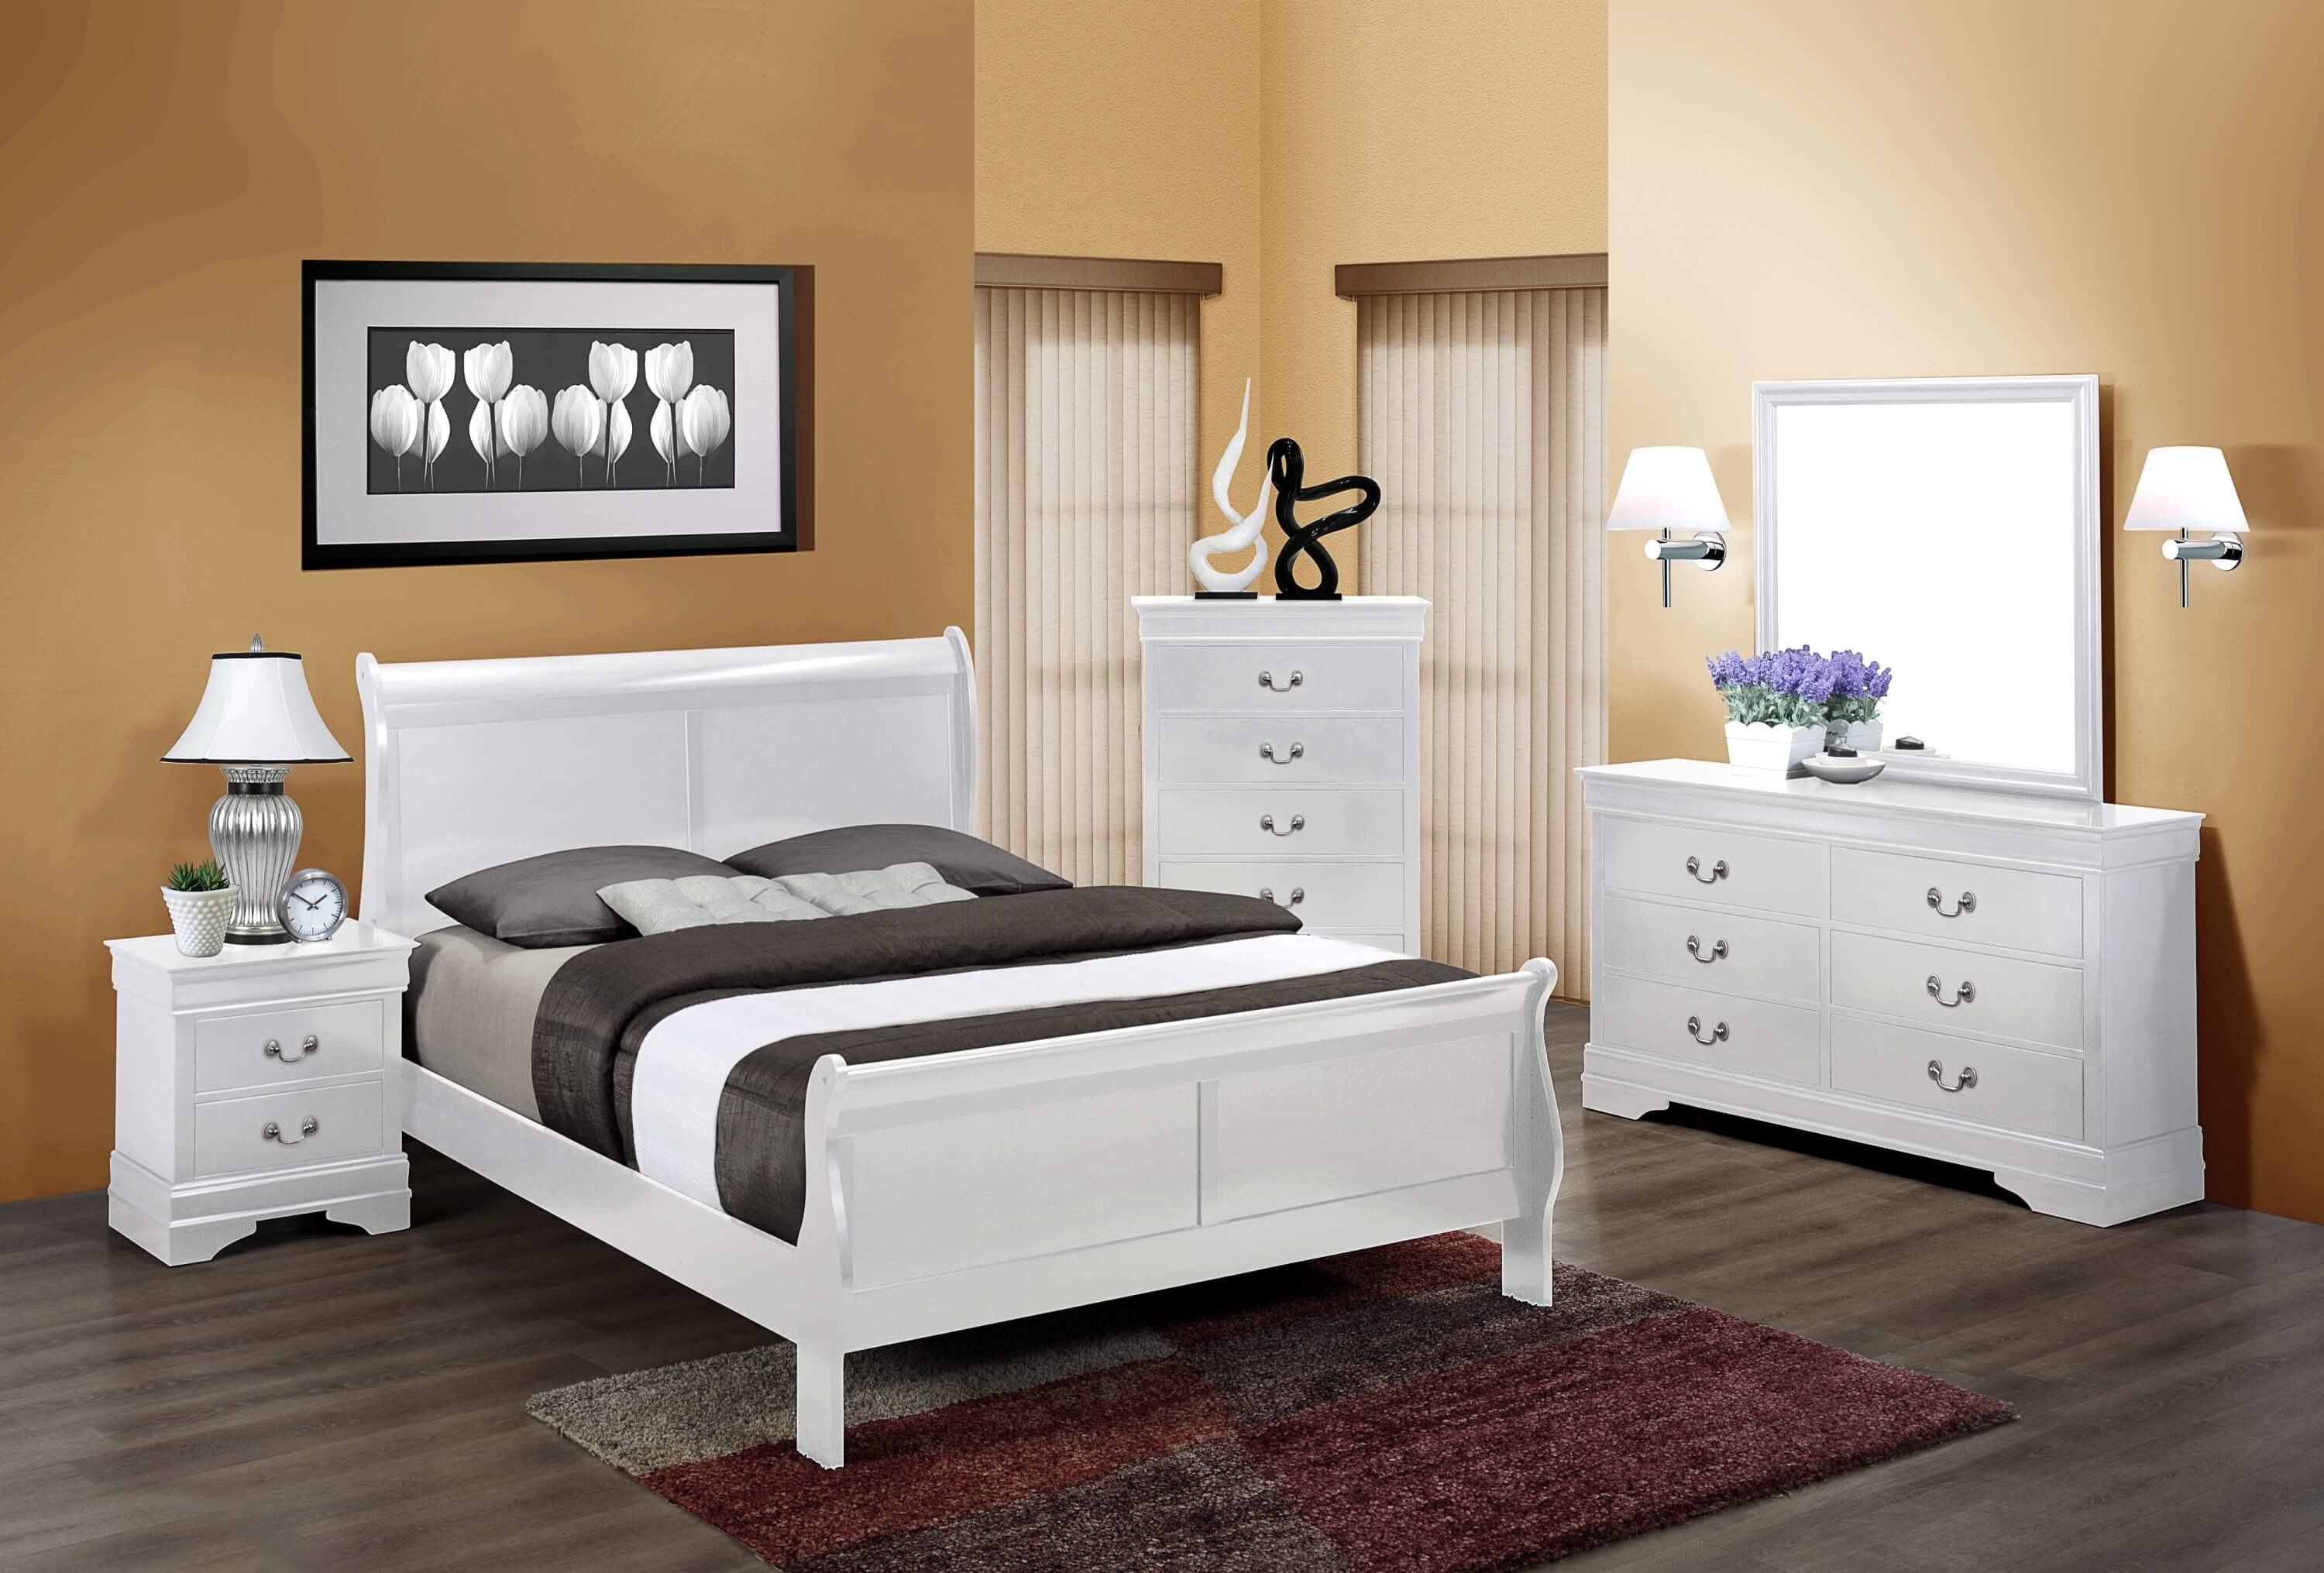 white louis philip bedroom set bedroom furniture sets 10824 | cmeb3600